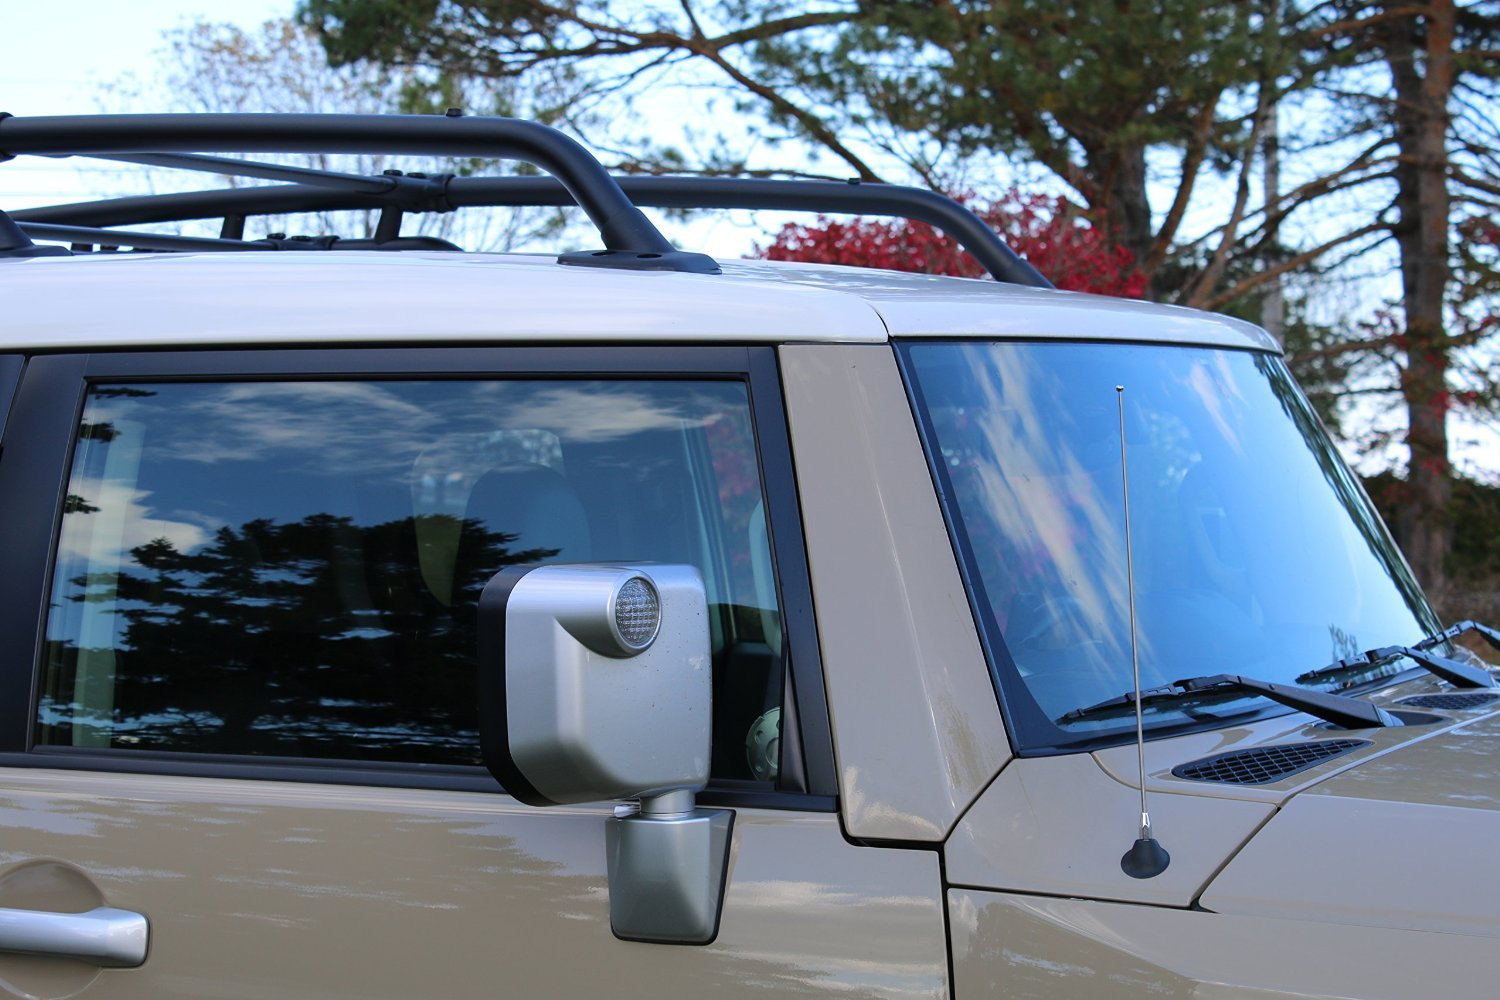 2007-2012 AntennaMastsRus 17 All-Terrain Flexible Rubber Antenna is Compatible with Chevrolet Colorado - SPRING STEEL INTERNAL CORE